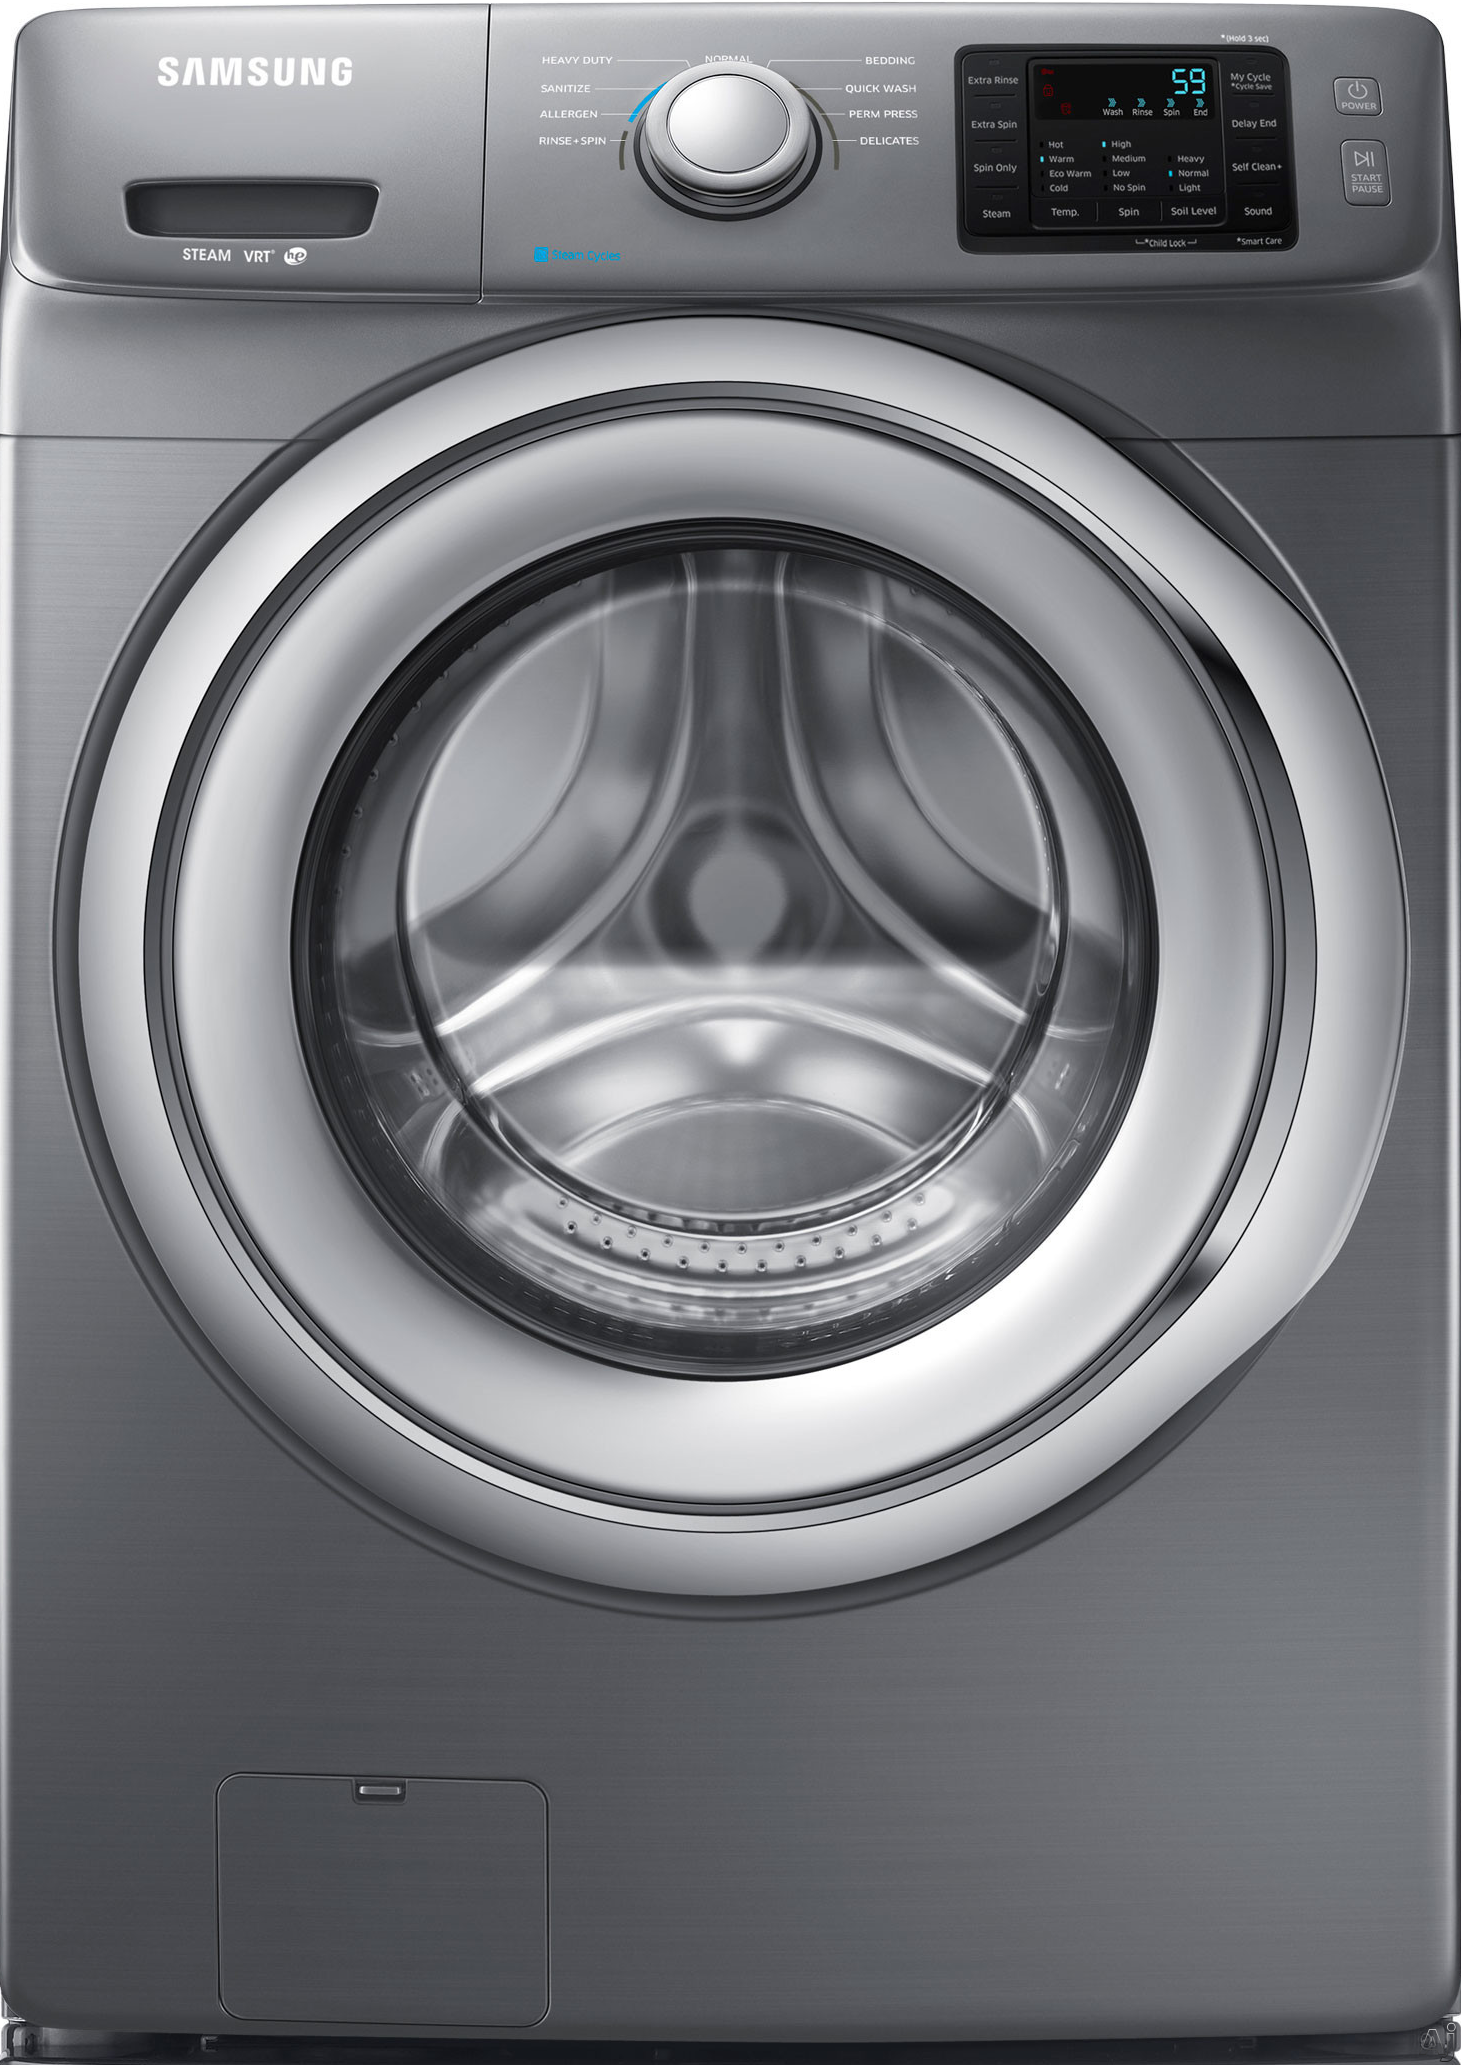 Samsung WF42H5200AP 4.2 cu. ft. Front-Load Washer w/ Steam Washing - Stainless Platinum, Silver 02646443000